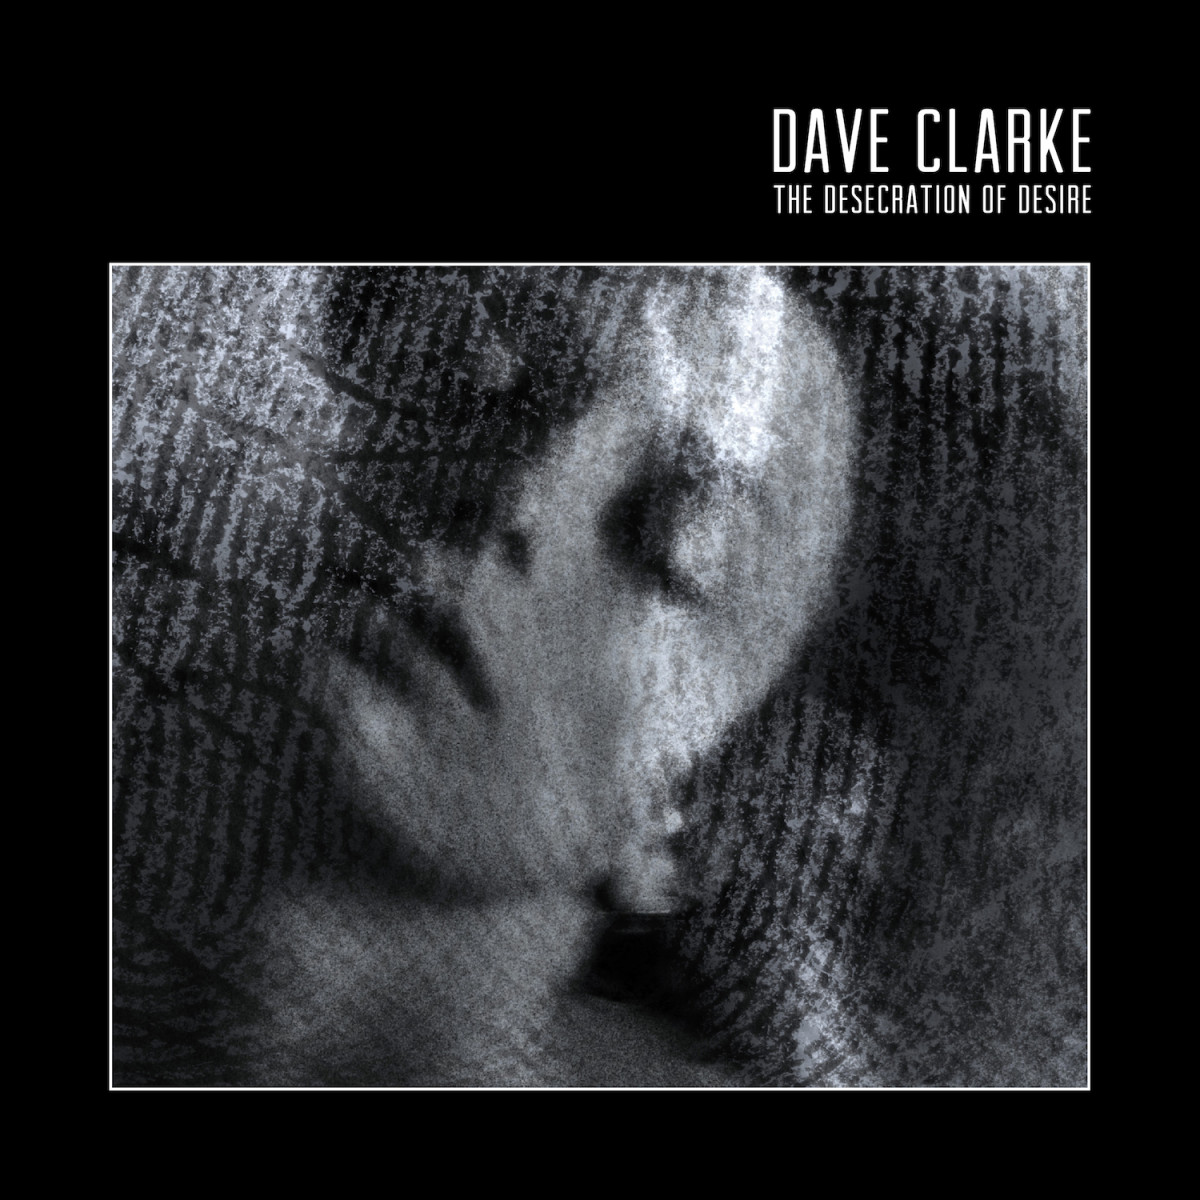 Dave Clarke The Desecration of Desire